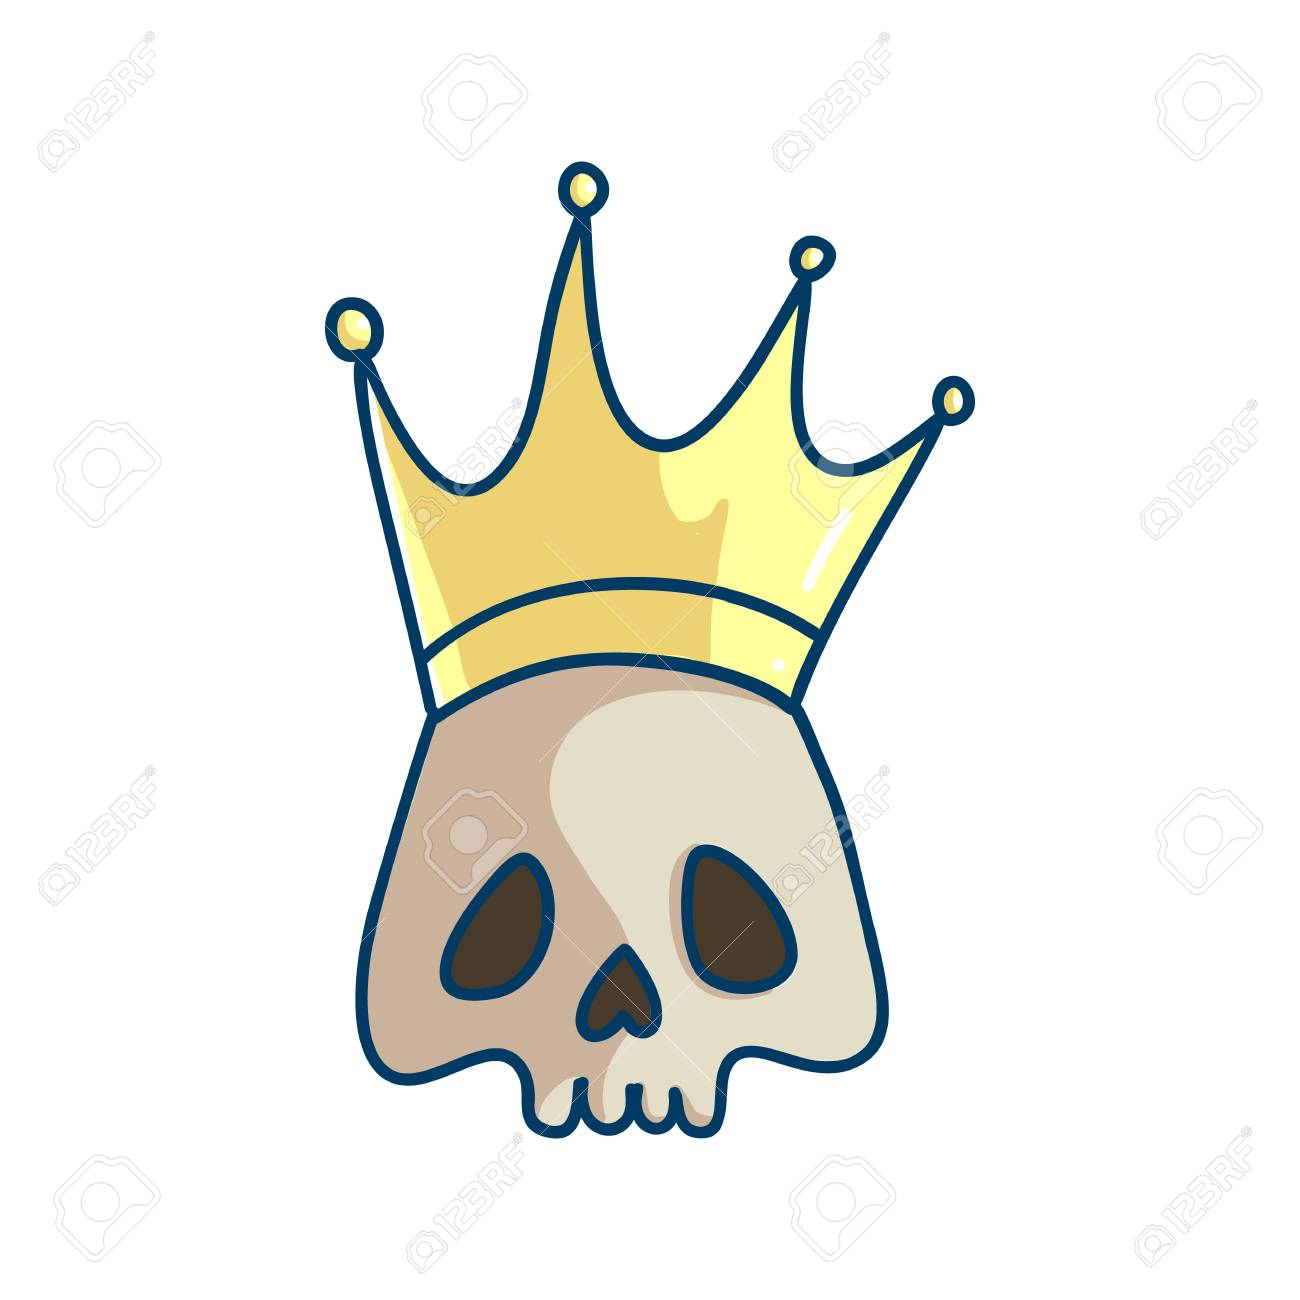 King Of The Death Skull With Crown Temporary Tattoo Template Royalty Free Cliparts Vectors And Stock Illustration Image 106587803 Crown king tattoo illustrations & vectors. king of the death skull with crown temporary tattoo template